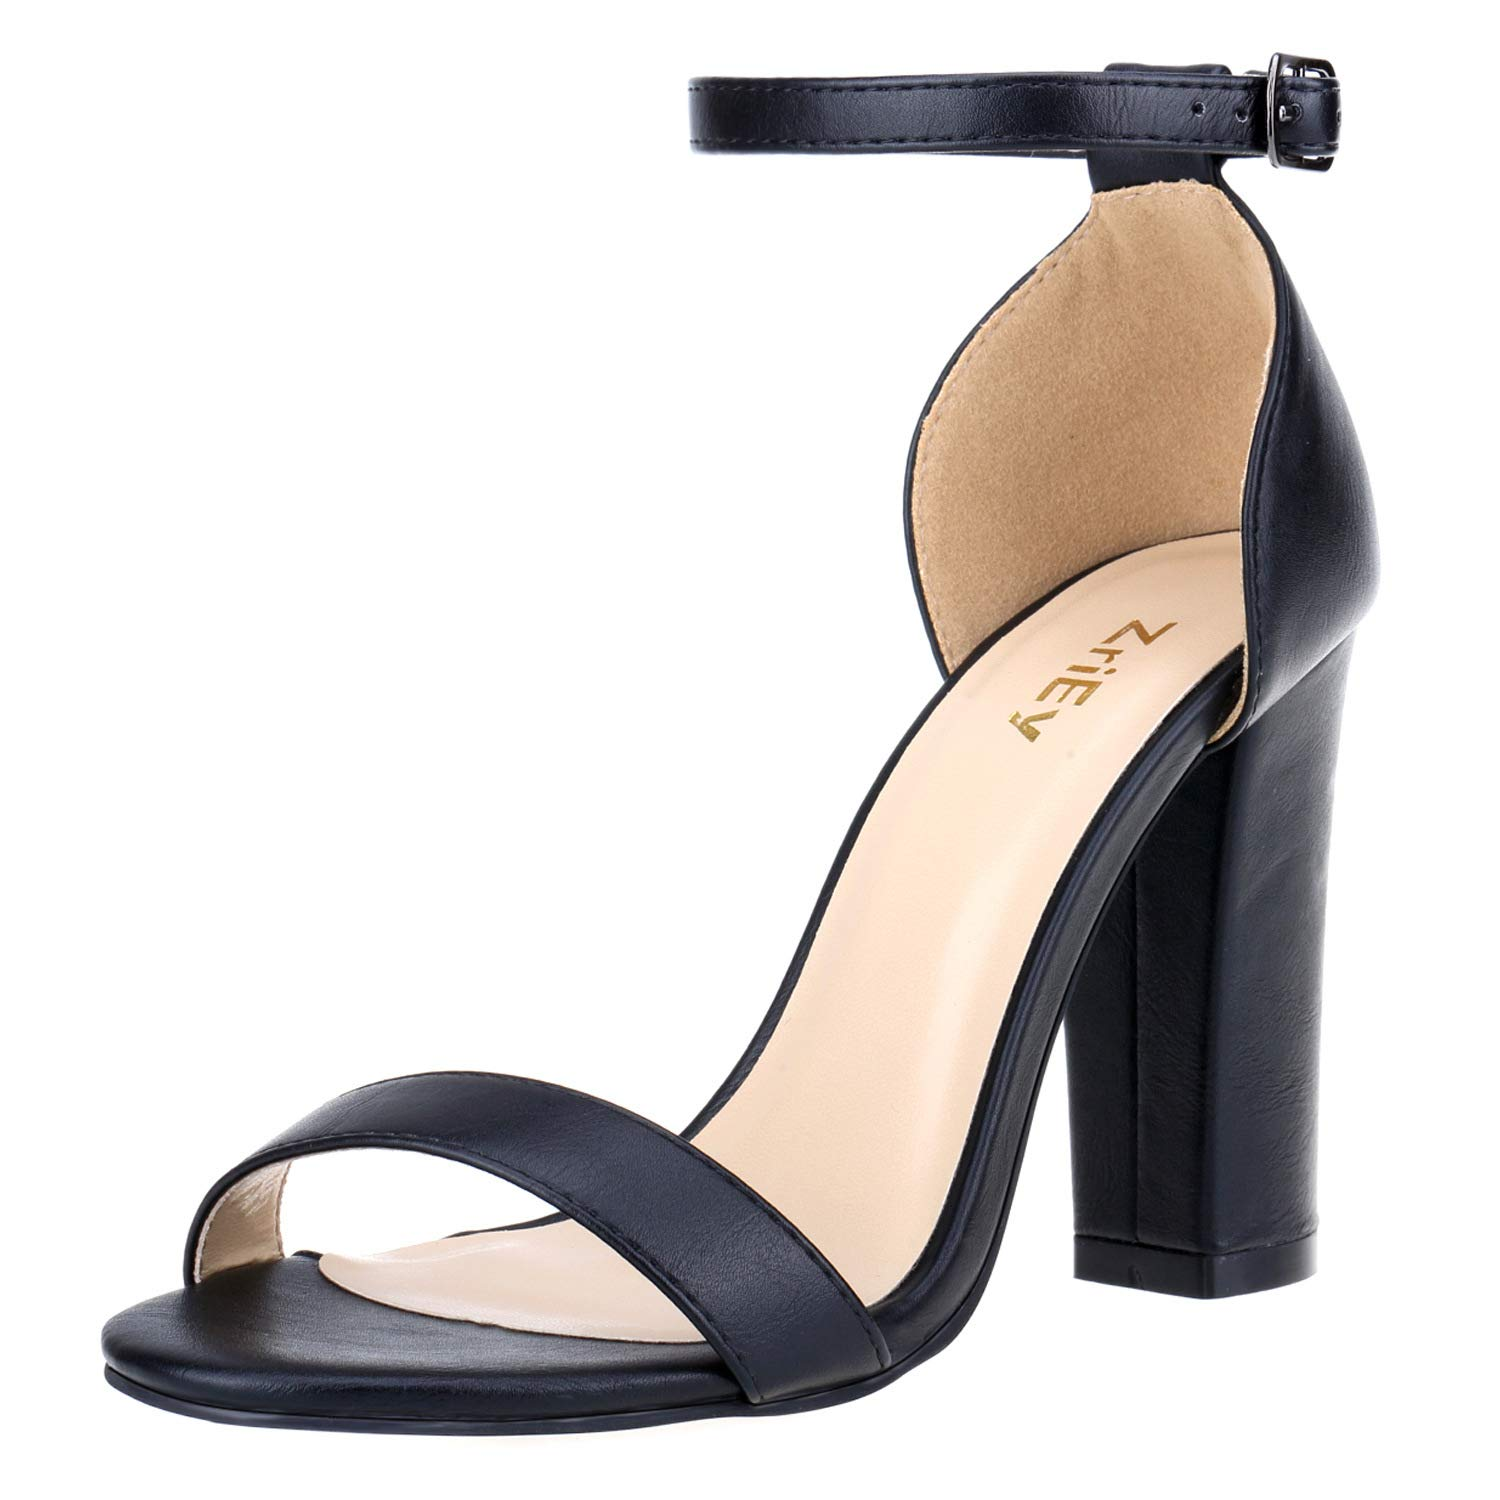 979e1bfe780 ZriEy Women's Chunky Block Strappy High Heel Pump Sandals Fashion Ankle  Strap Open Toe Shoes